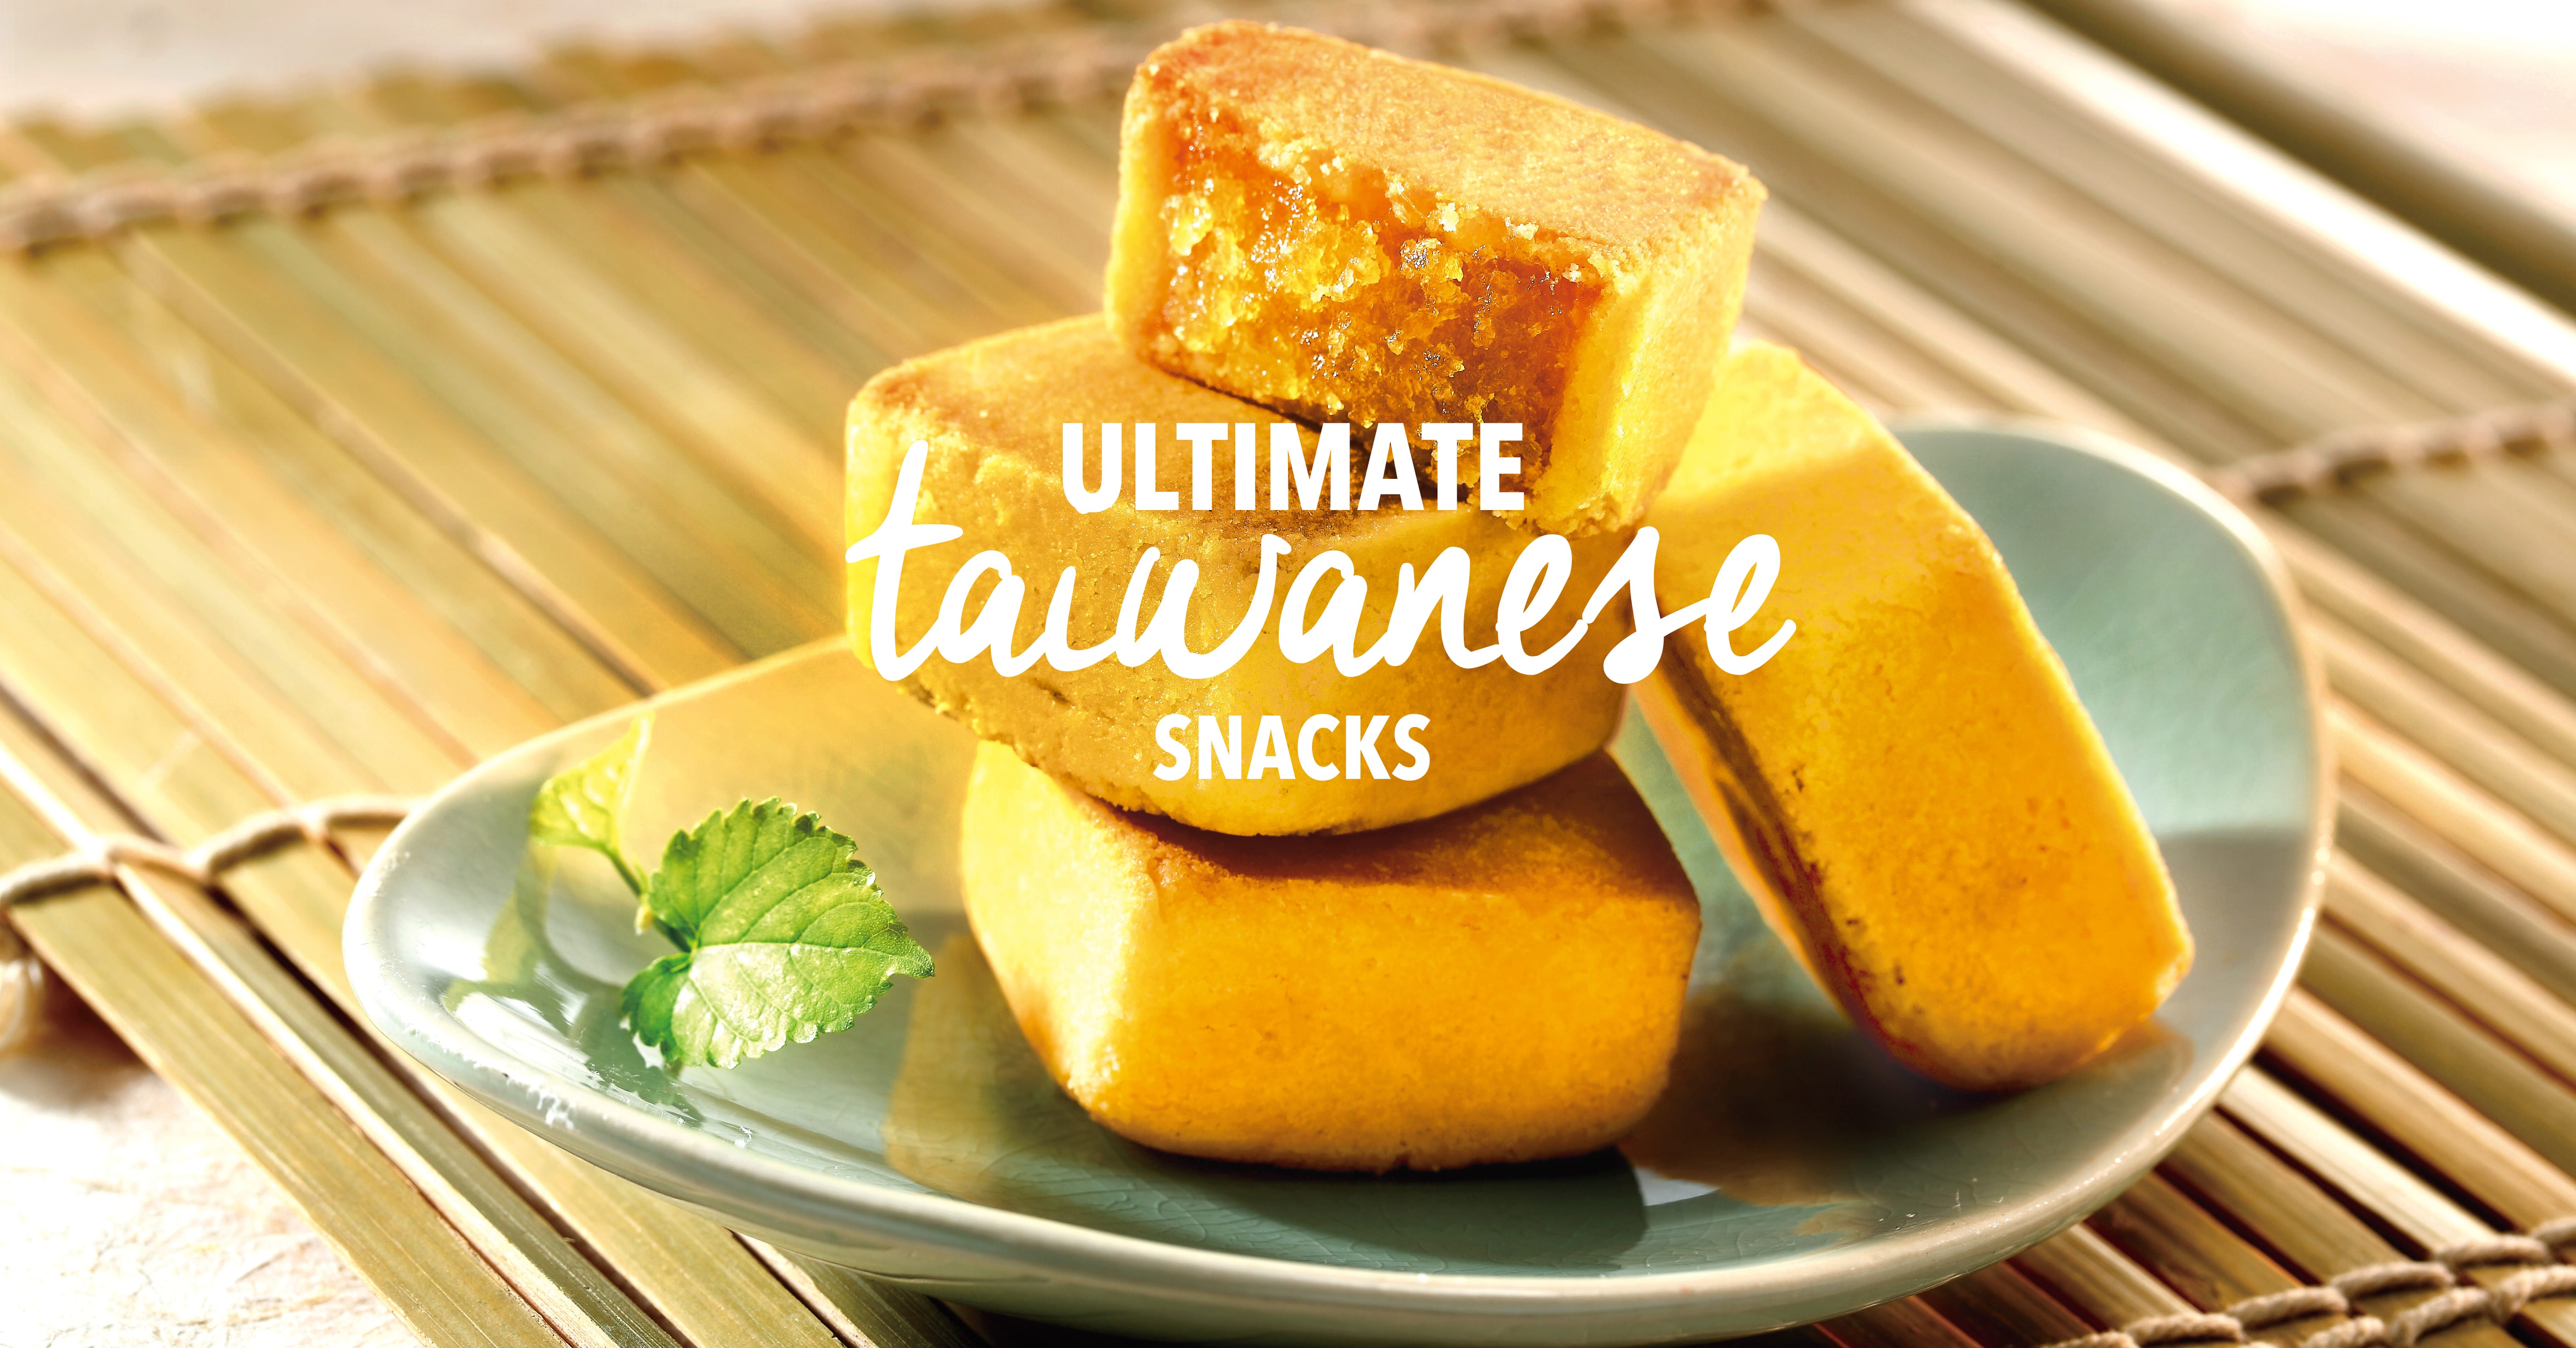 10 Ultimate Taiwan Snacks You Need To Bring Home - Klook Blog